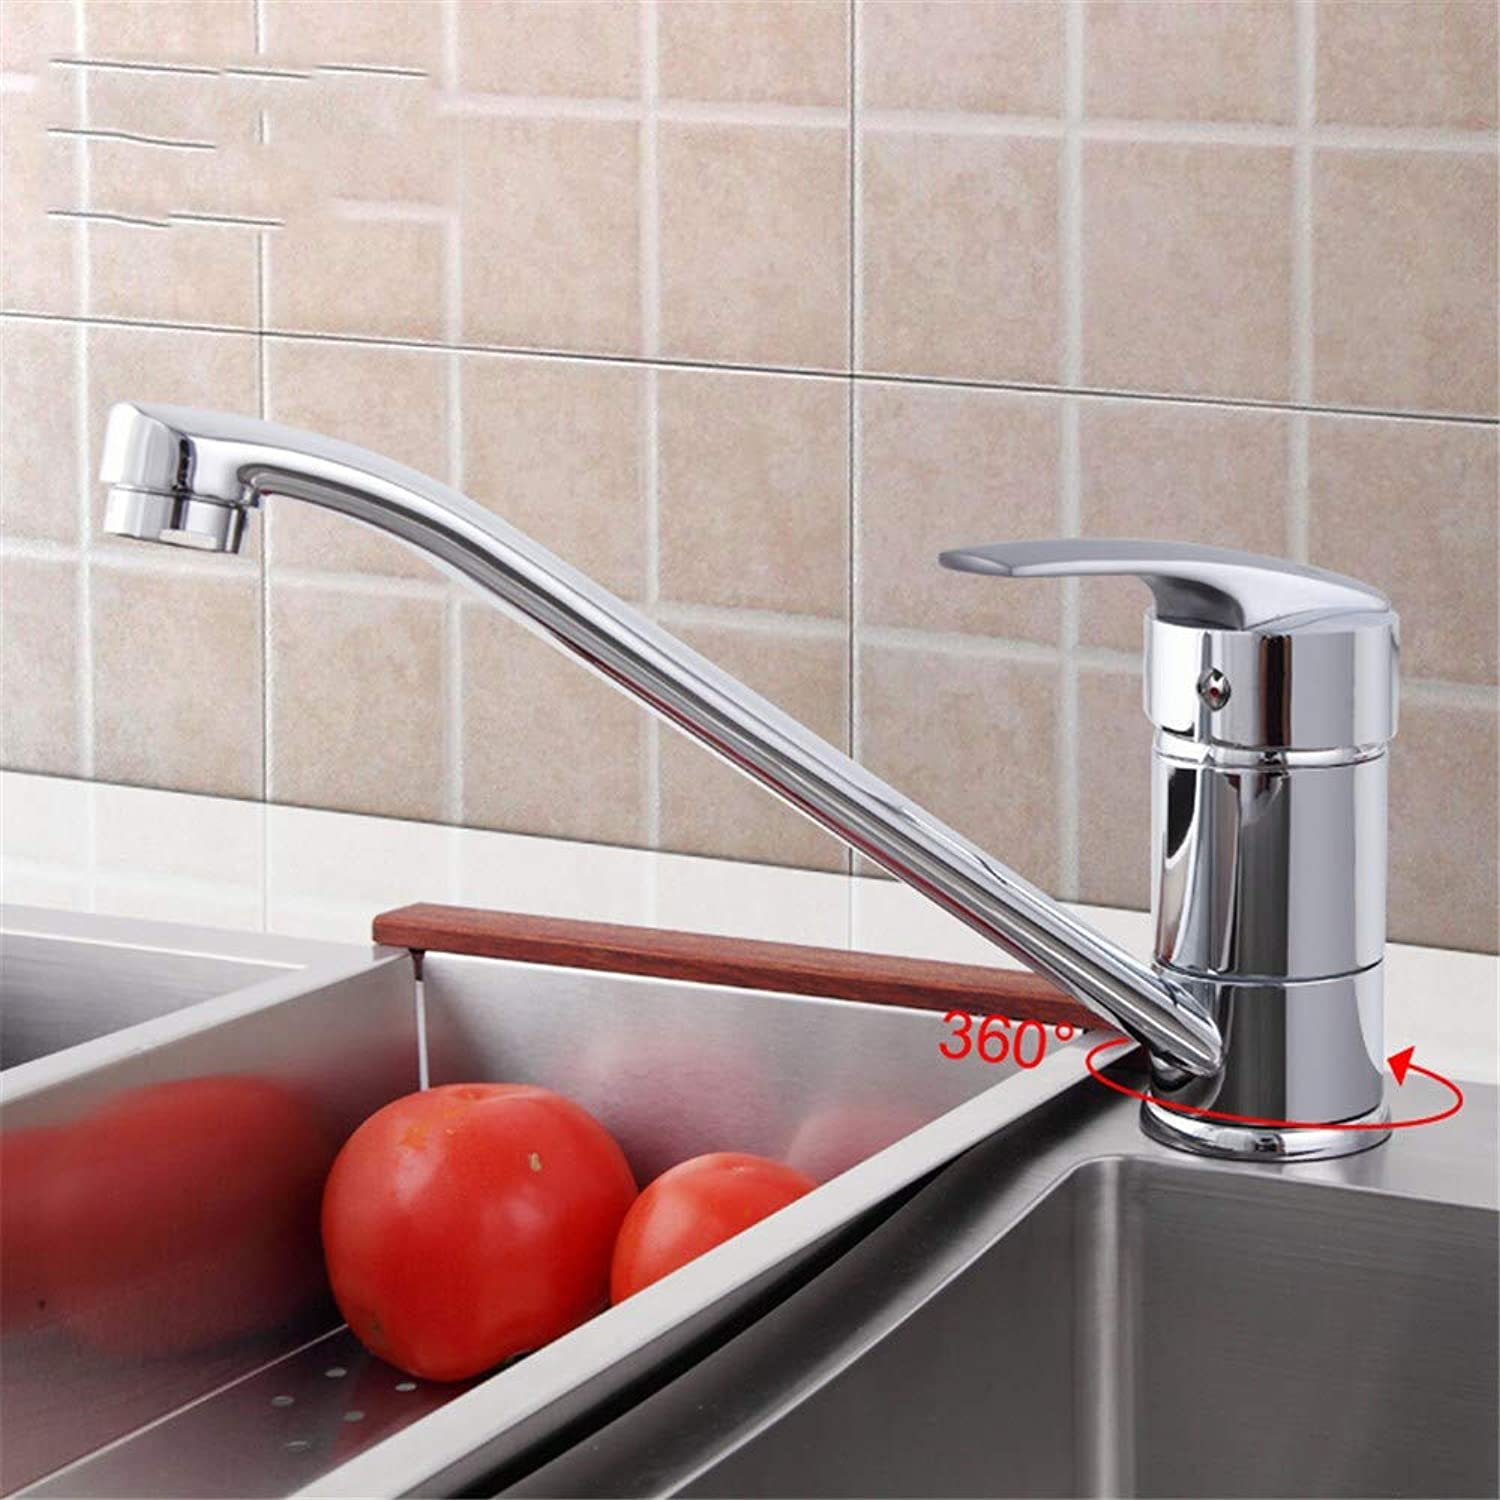 Classic Style Kitchen Faucet Solid Brass Single Handle Cold and Hot Water Tap 360 Degree redation F4906